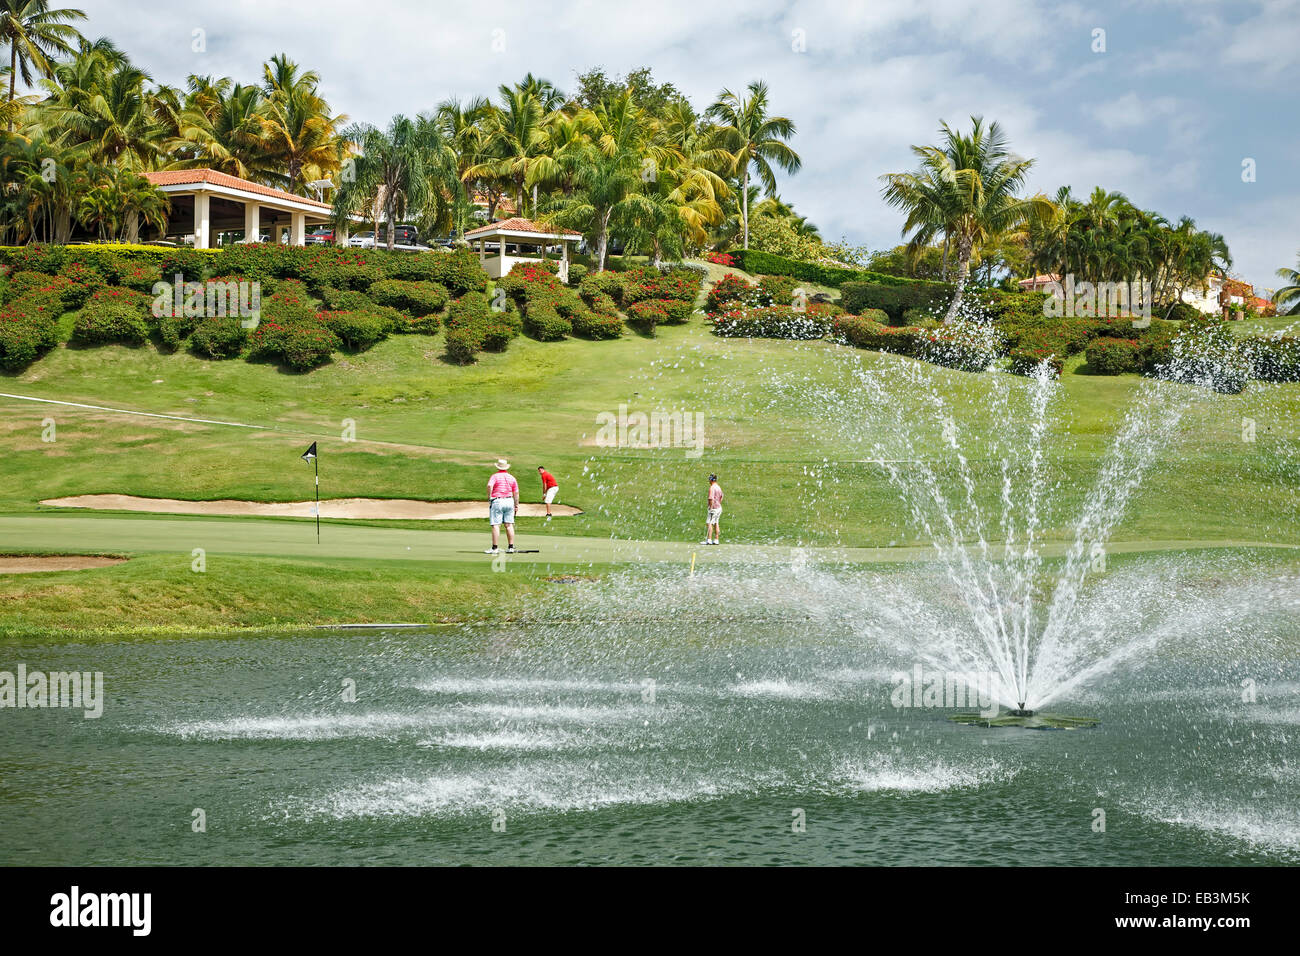 Golfers on green, El Conquistador Golf Course, Fajardo, Puerto Rico - Stock Image